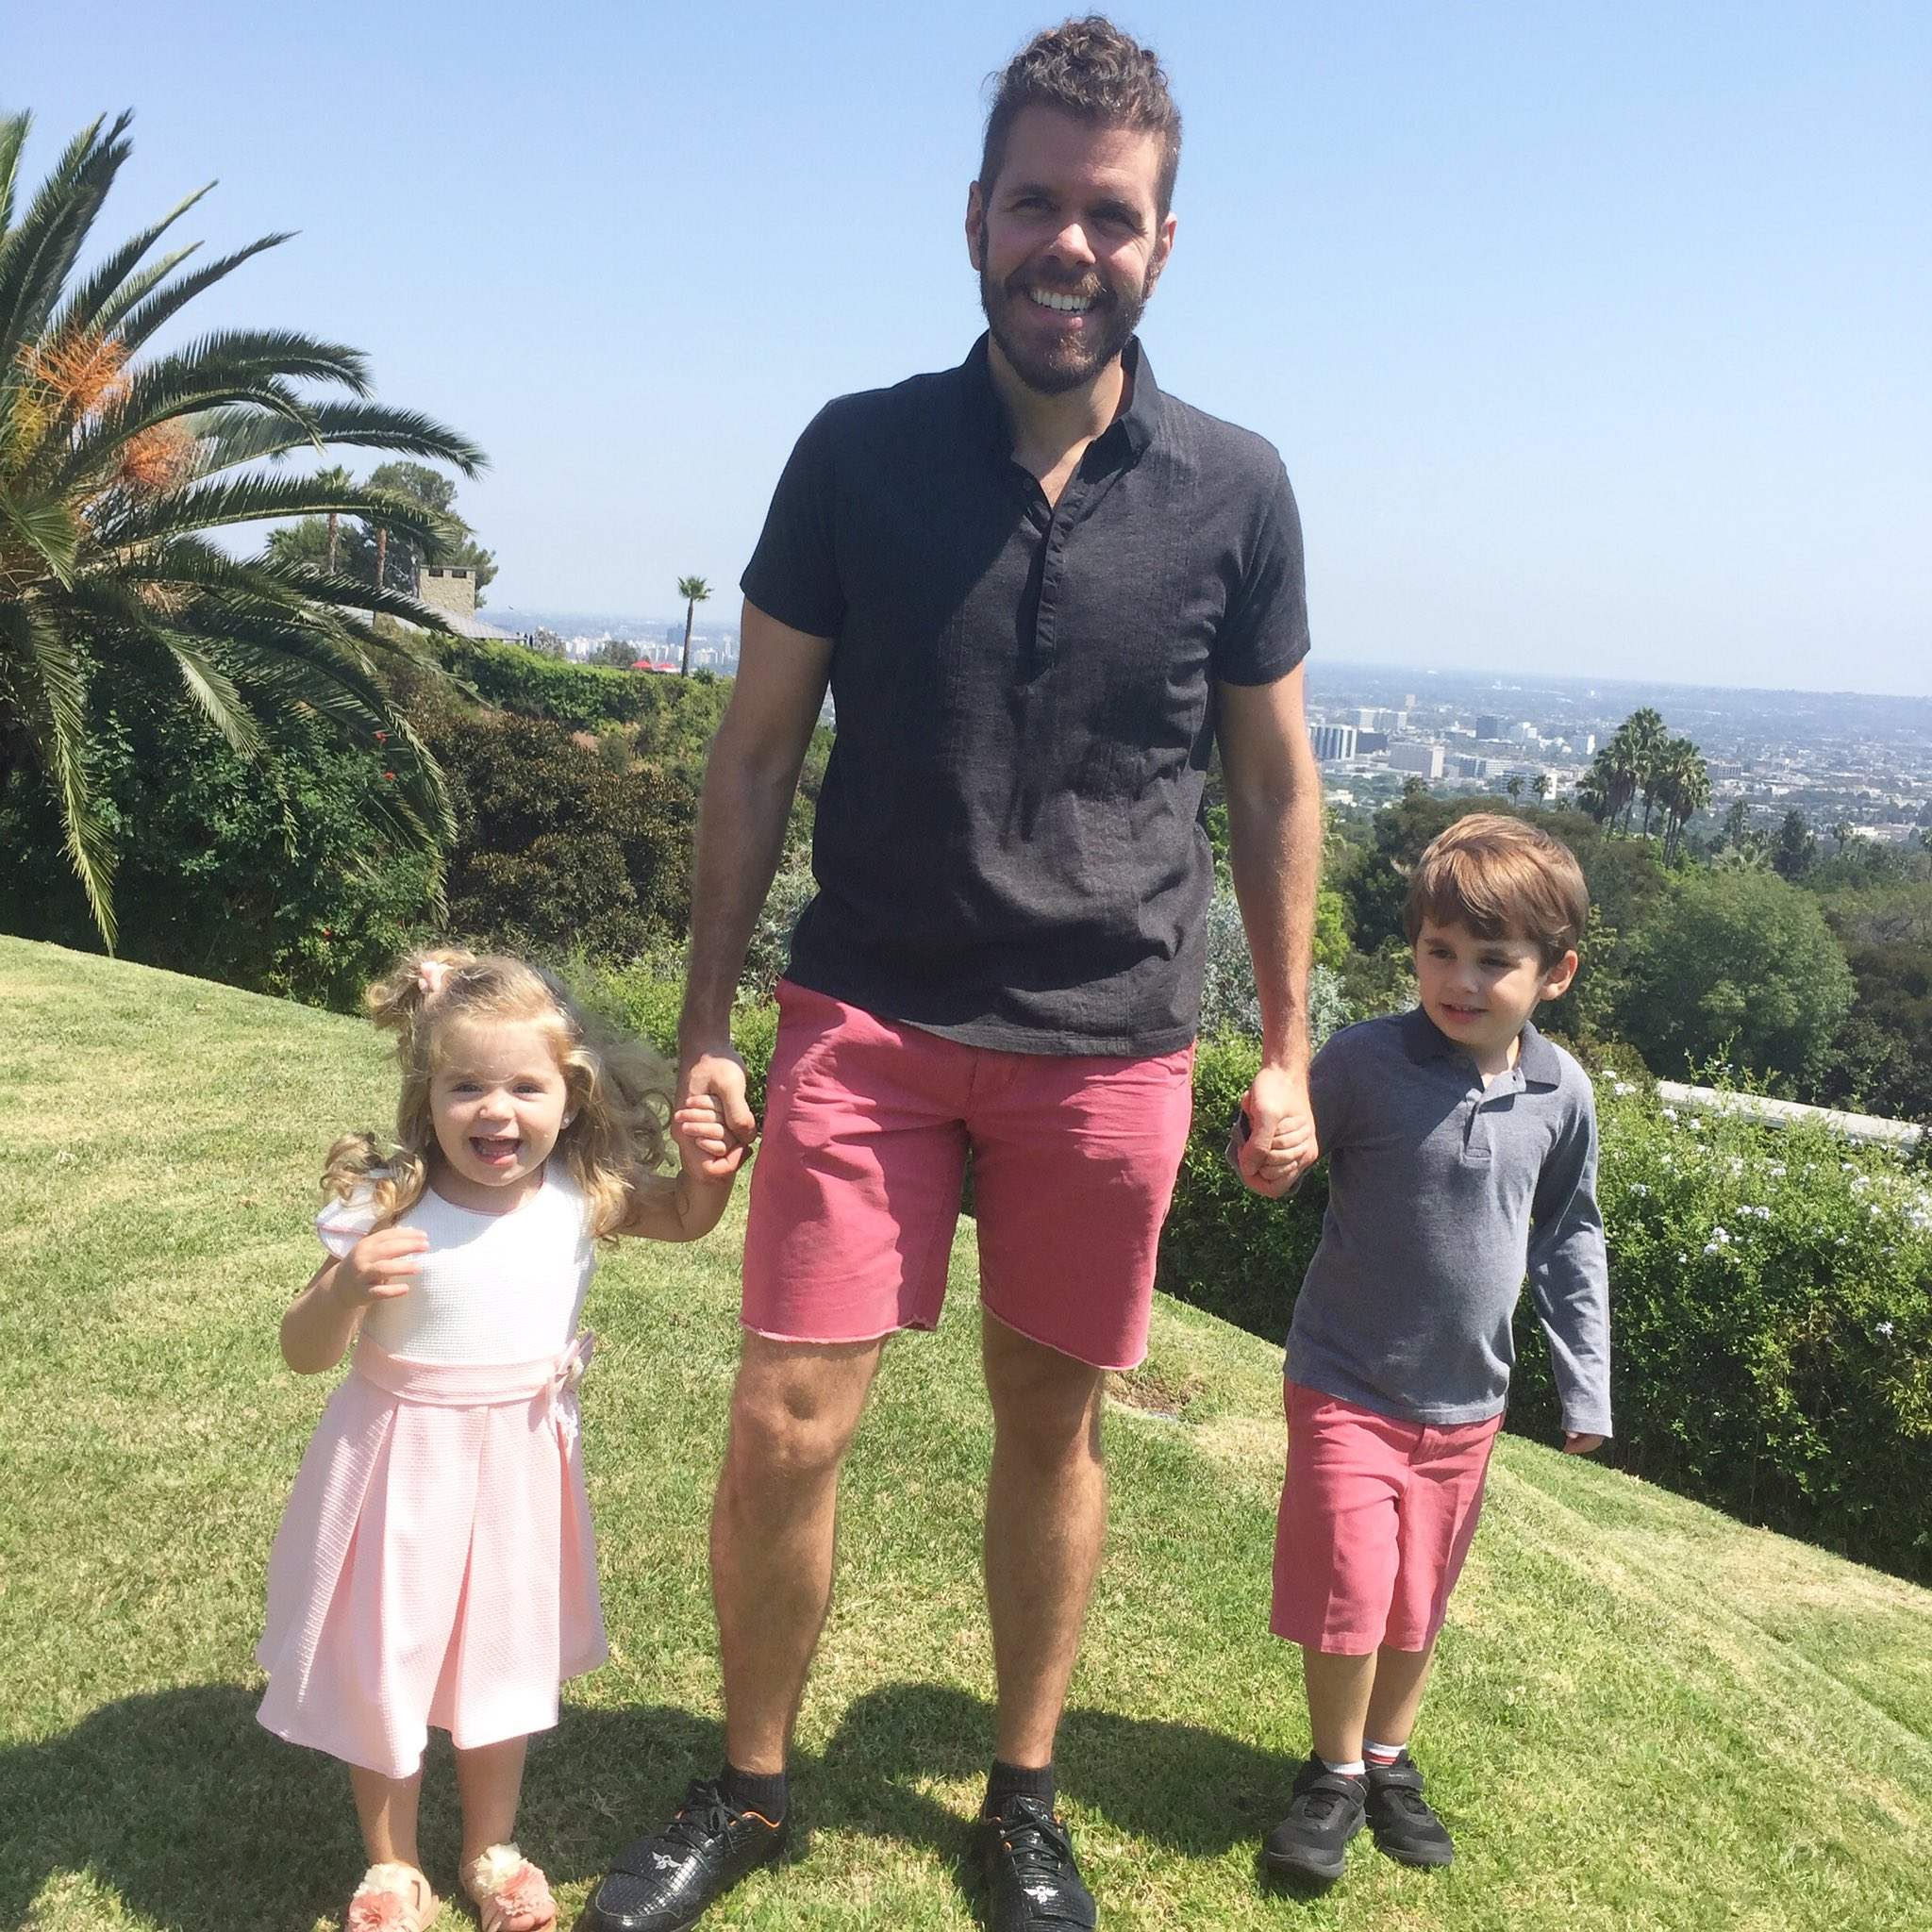 RT @ThePerezHilton: Taking a moment to enjoy the view, my kids and my life! https://t.co/DUGS3twzso https://t.co/3oDKgahY6j